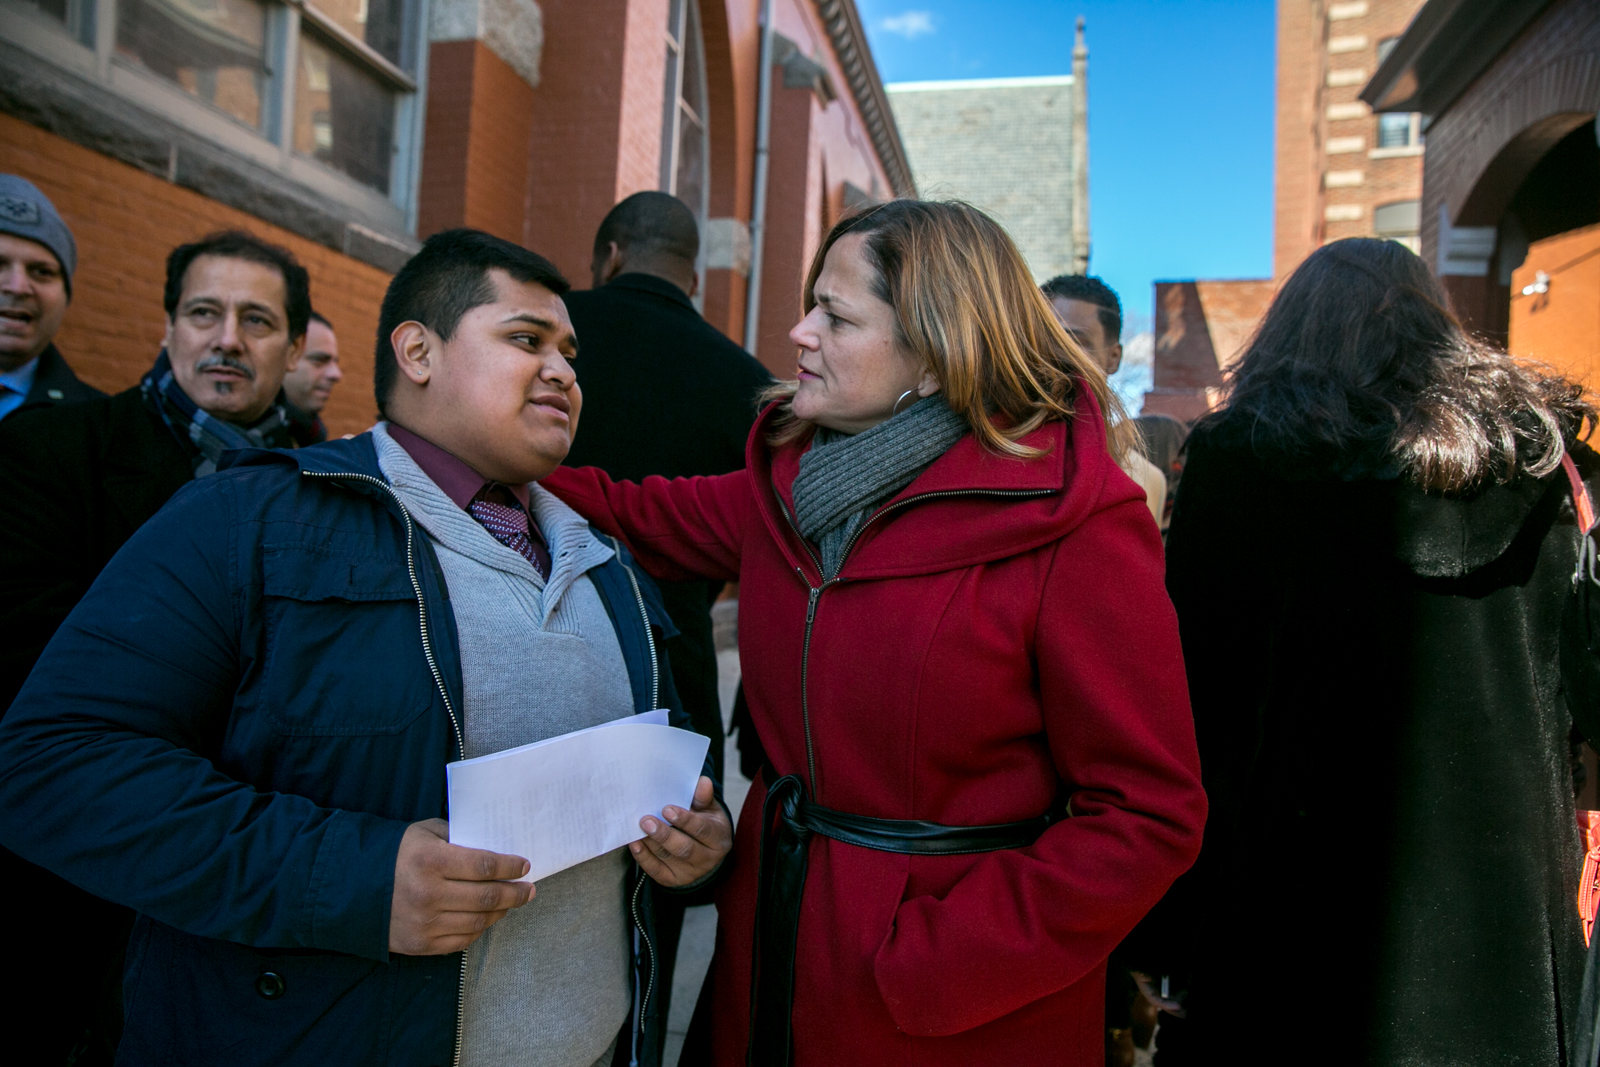 Council Speaker Melissa Mark-Viverito with Cesar Pena at the signing of immigration legislation in New York. (Photo: William Alatriste for the New York City Council)